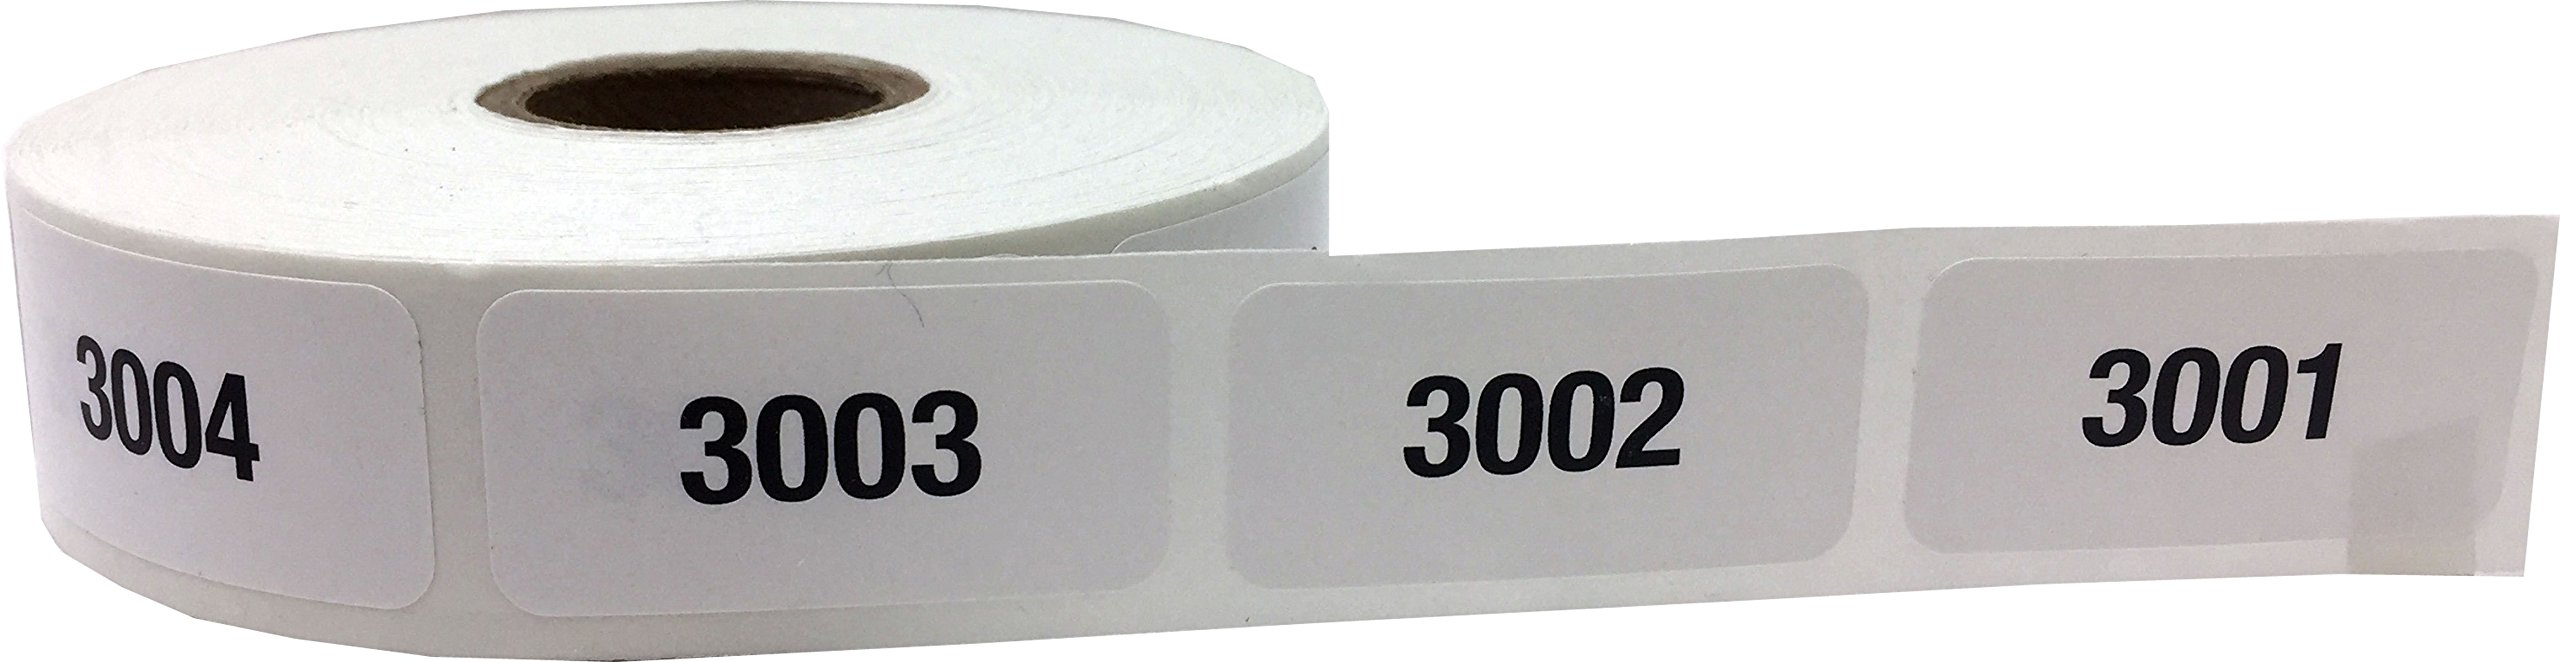 Consecutive Number Labels Bulk Pack Numbers 1 Through 10,000 White/Black .75 x 1.5 Rectangle Small Number Stickers For Inventory by InStockLabels.com (Image #6)